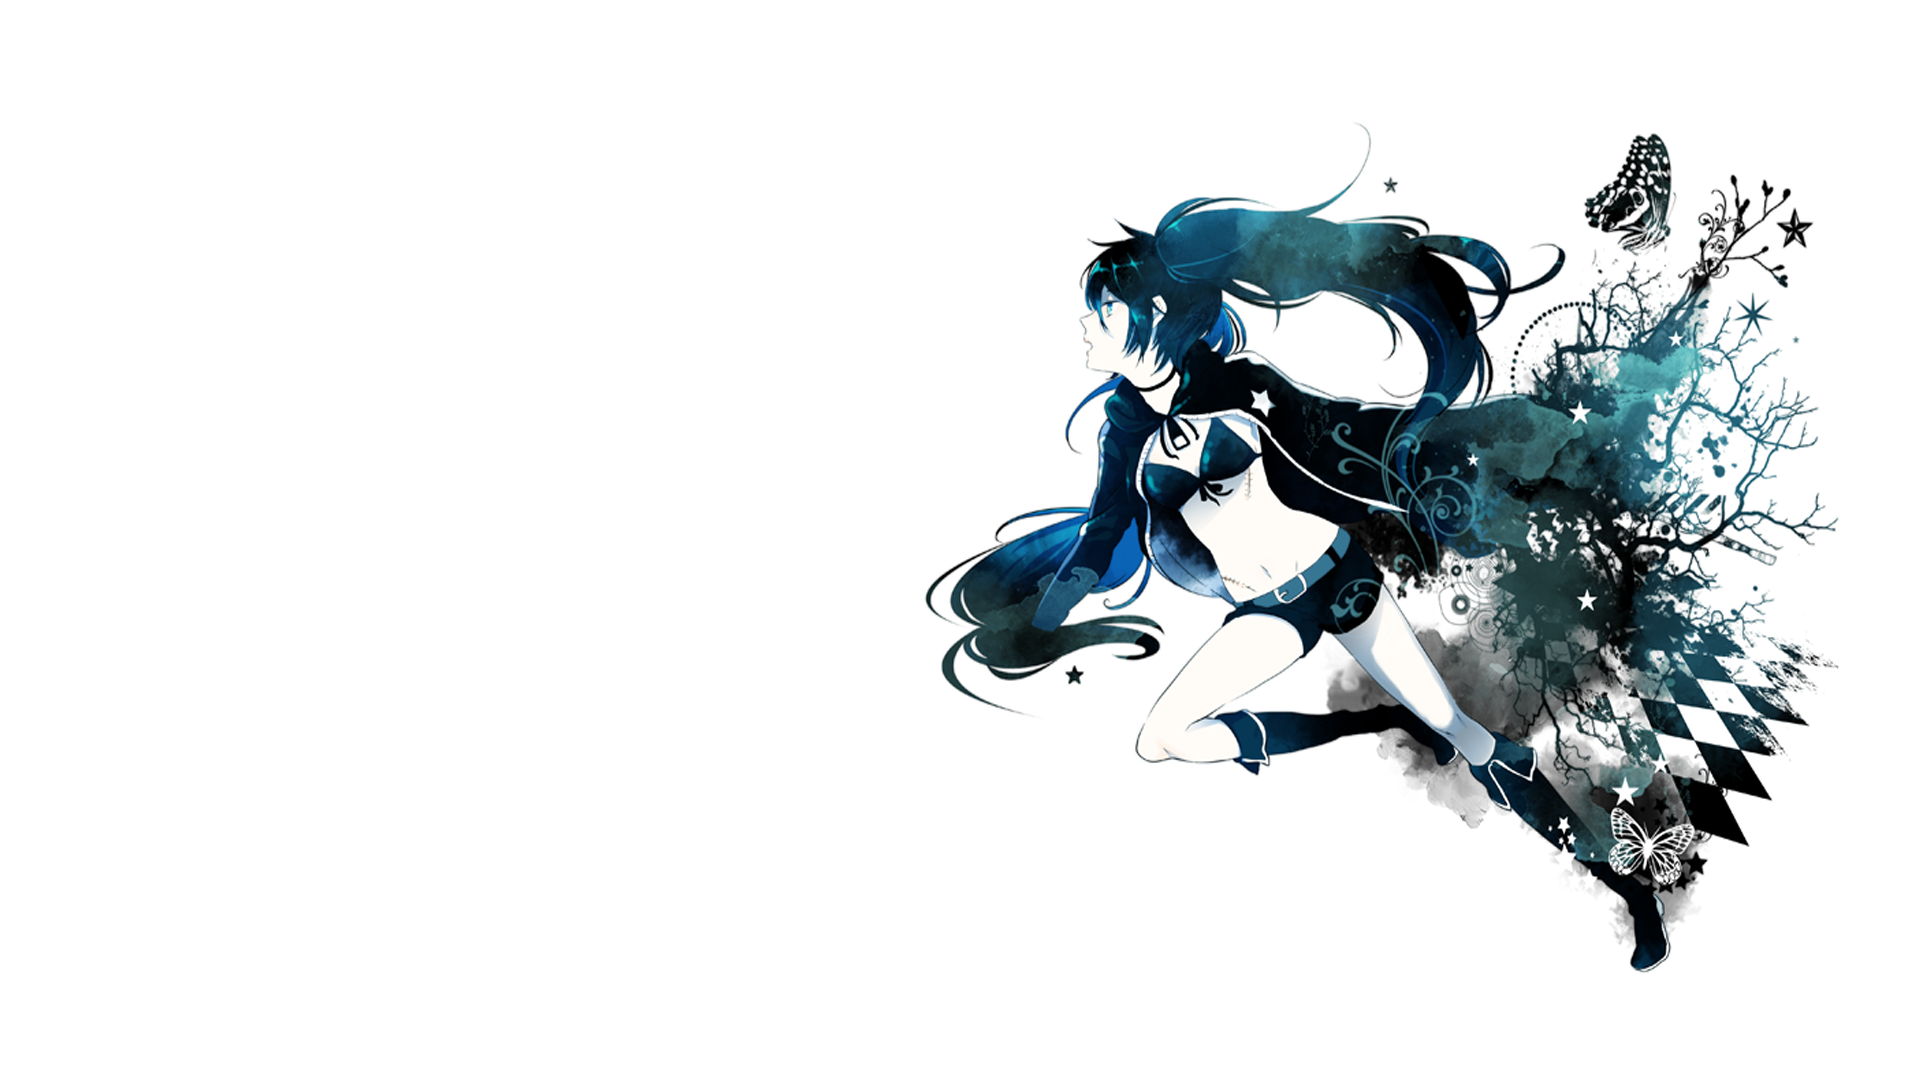 Black rock shooter full hd wallpaper and background image - Anime wallpaper full hd ...